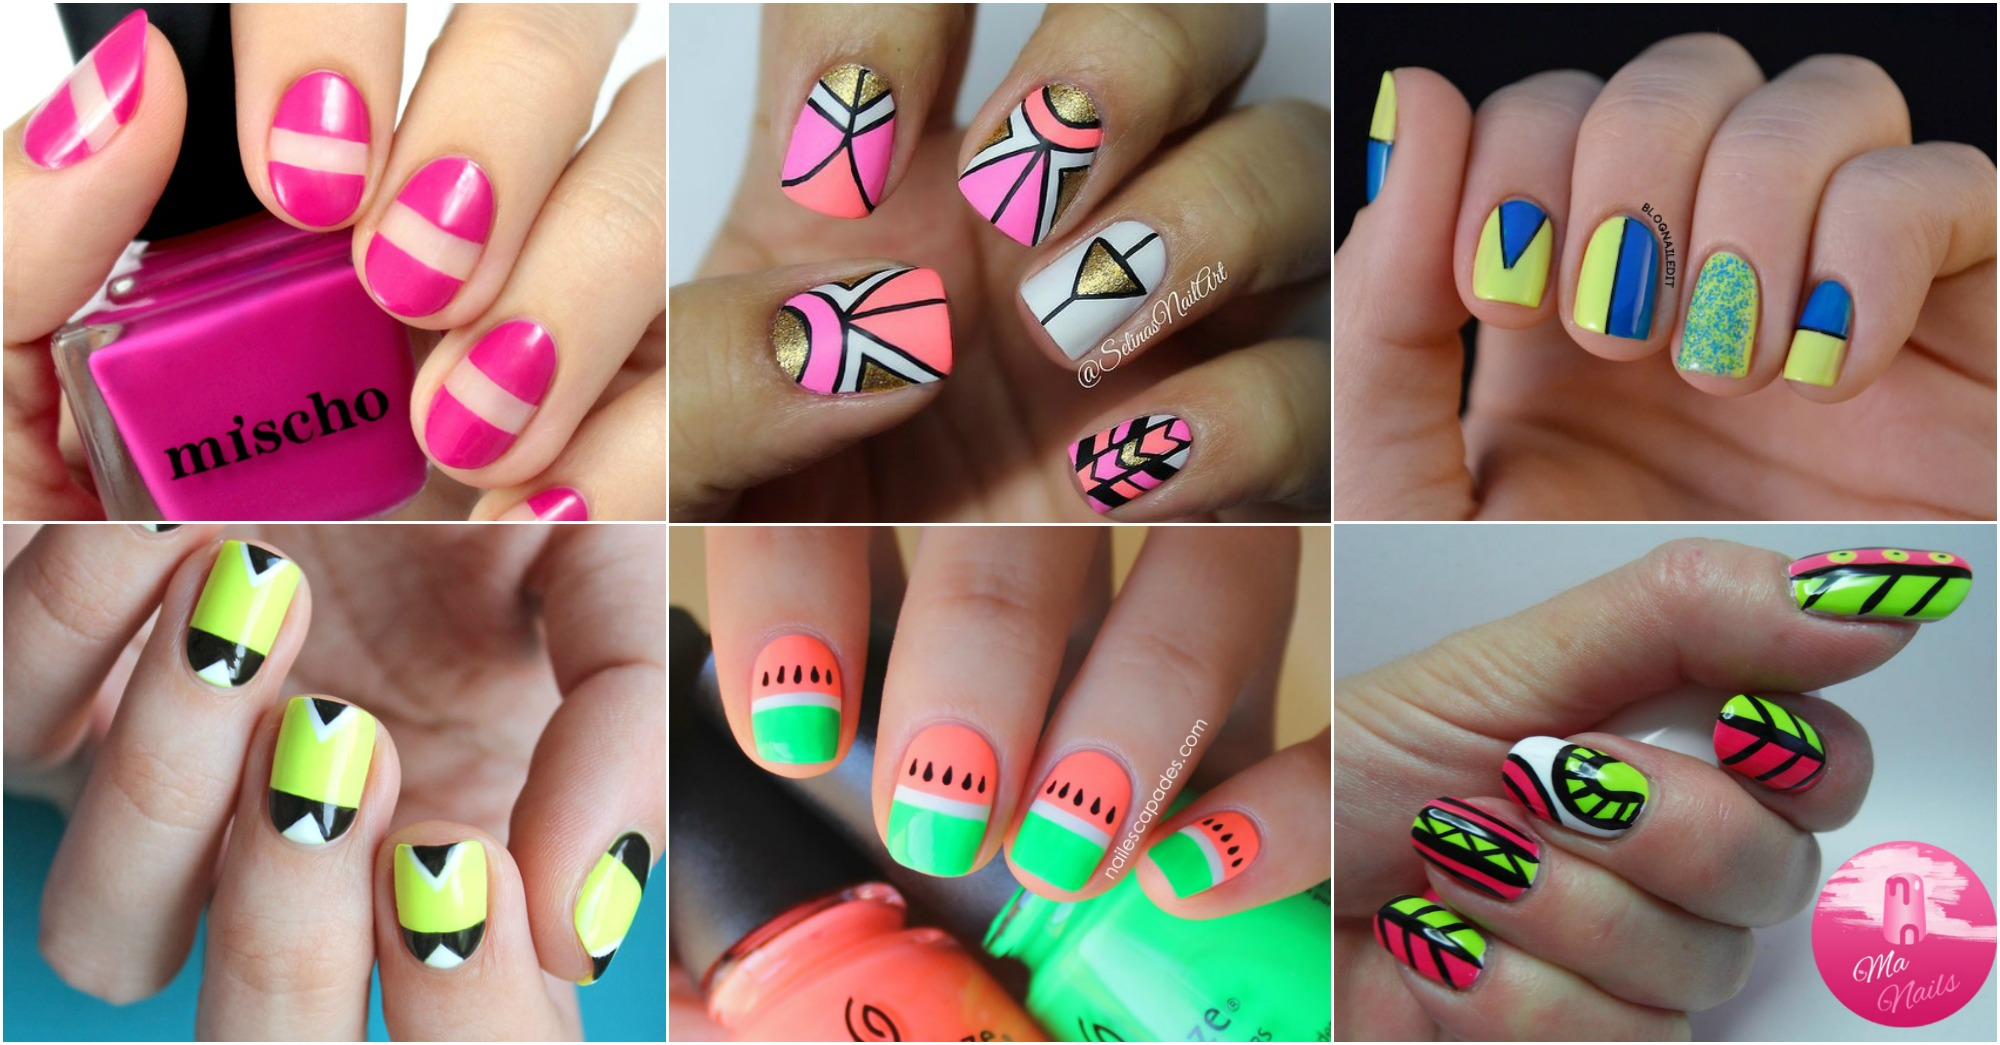 16 Neon Nail Designs To Copy This Summer  fashionsycom